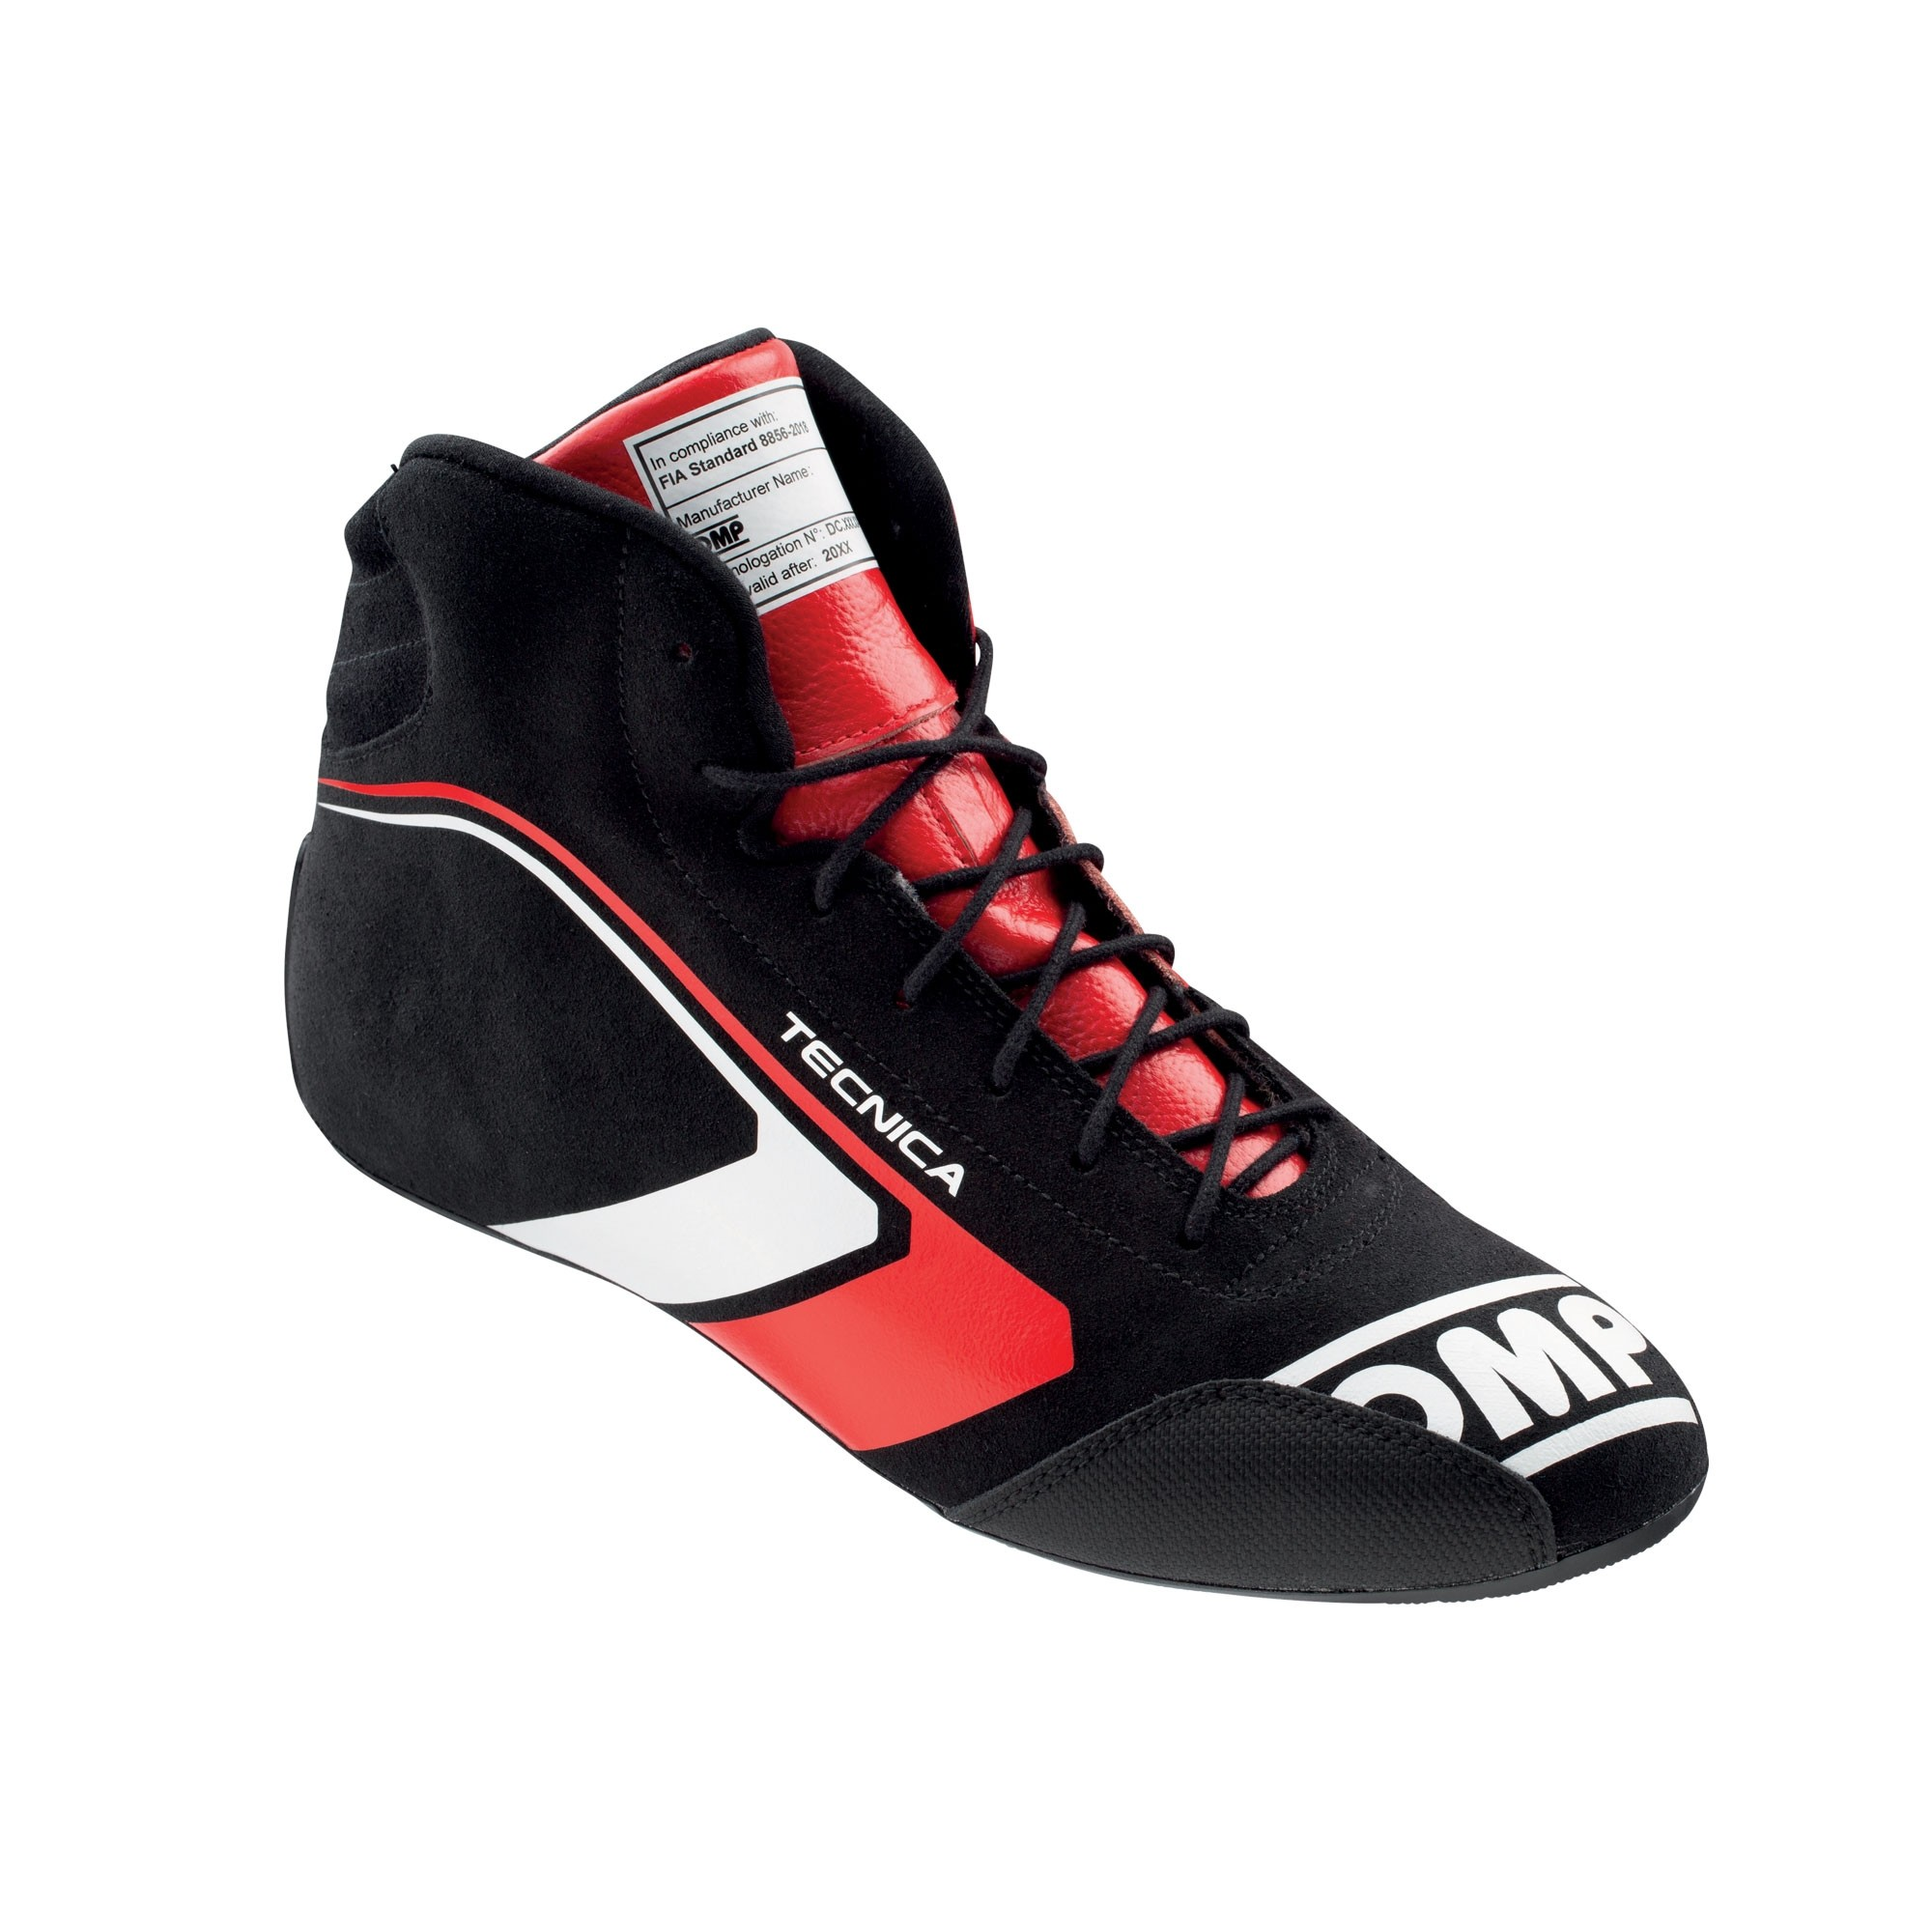 TECNICA Shoes my2021